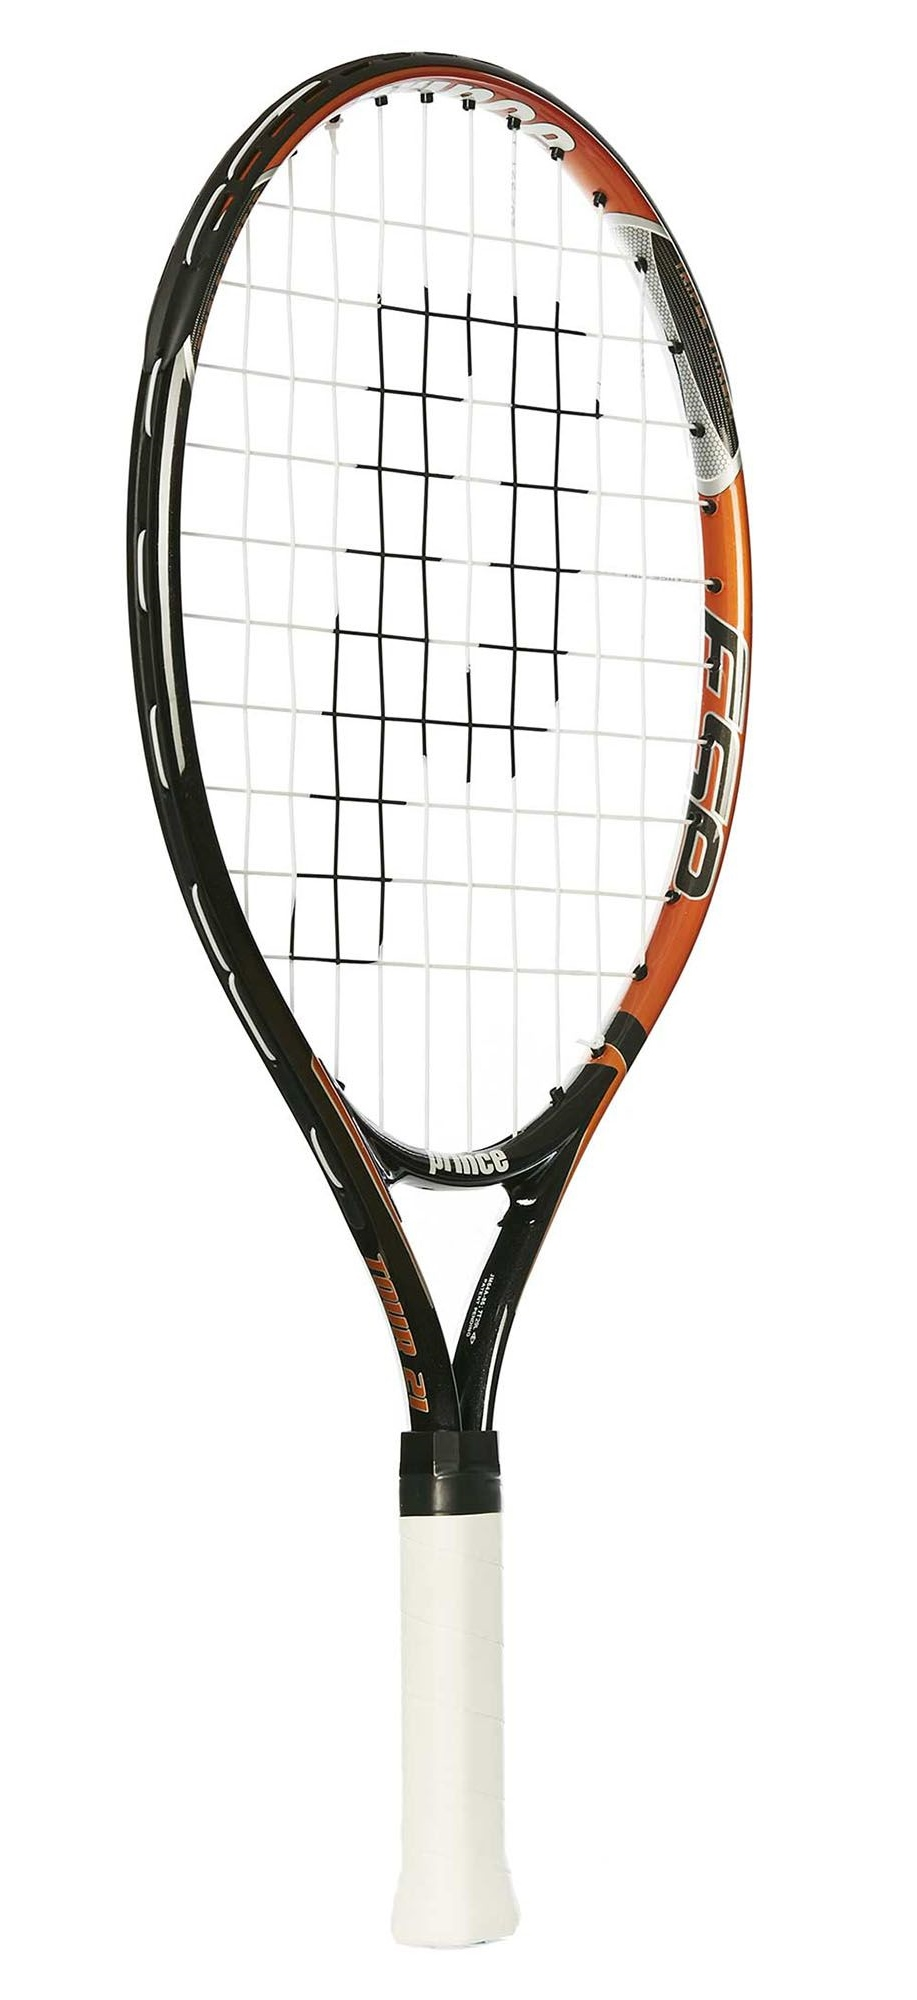 prince_titanium_tour_21_junior_tennis_racket_prince_titanium_tour_21_junior_tennis_racket_2000x2000